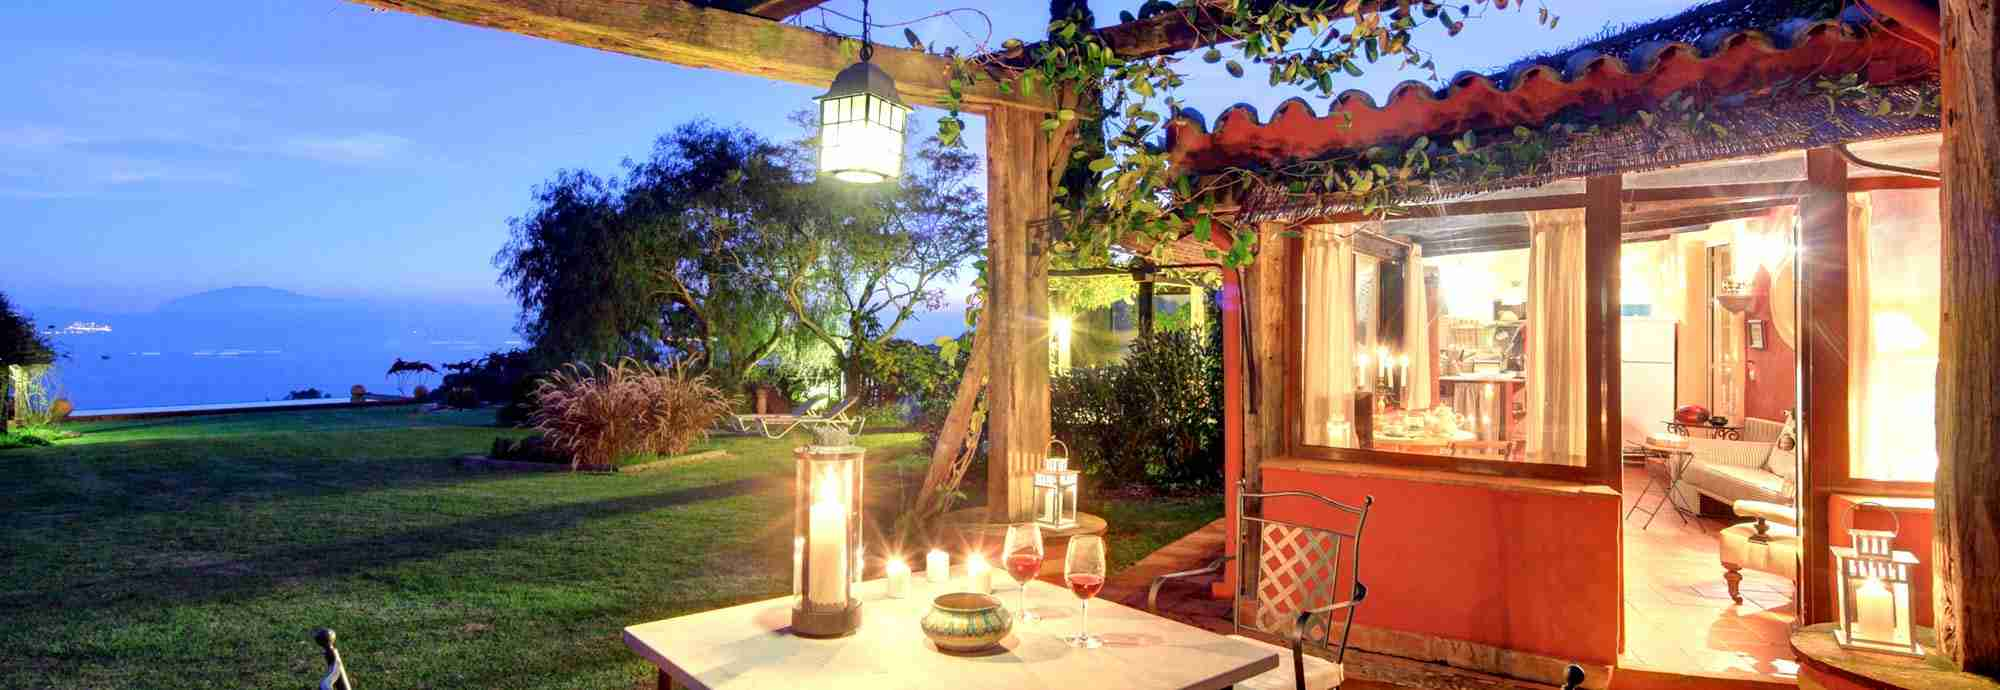 Cliff cottage with Africa view, marvellous gardens, WiFi and pool